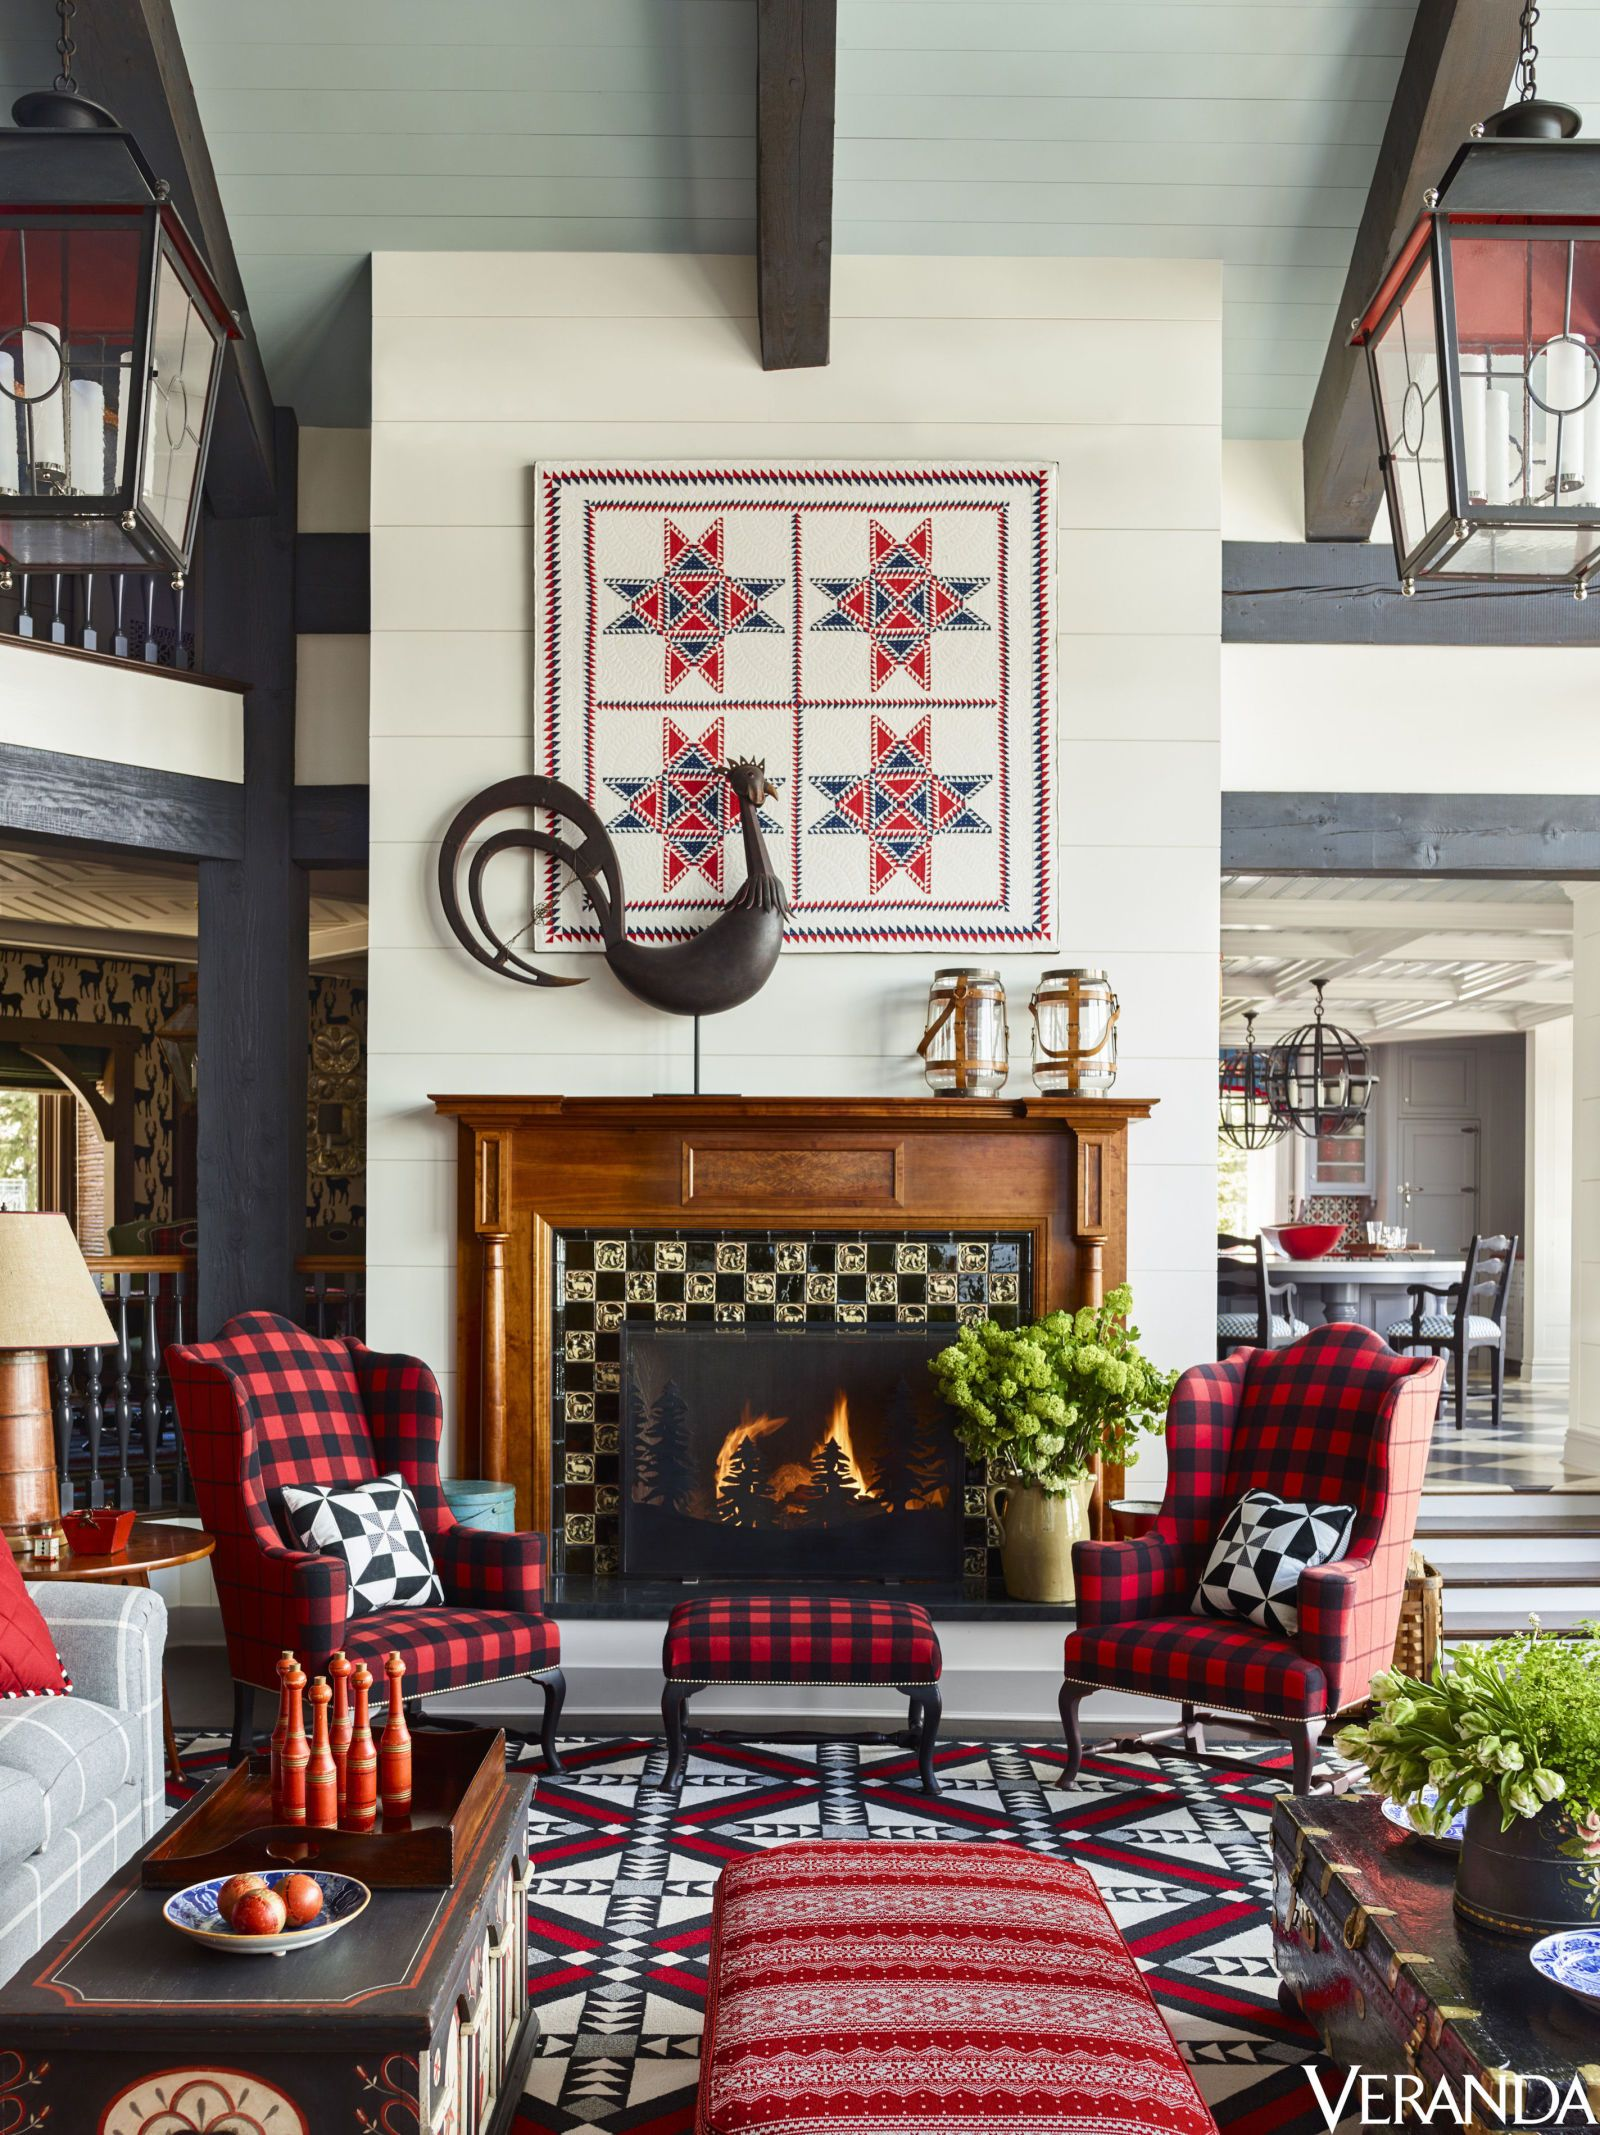 Tour A Utah Ski House With Playful All American Style -